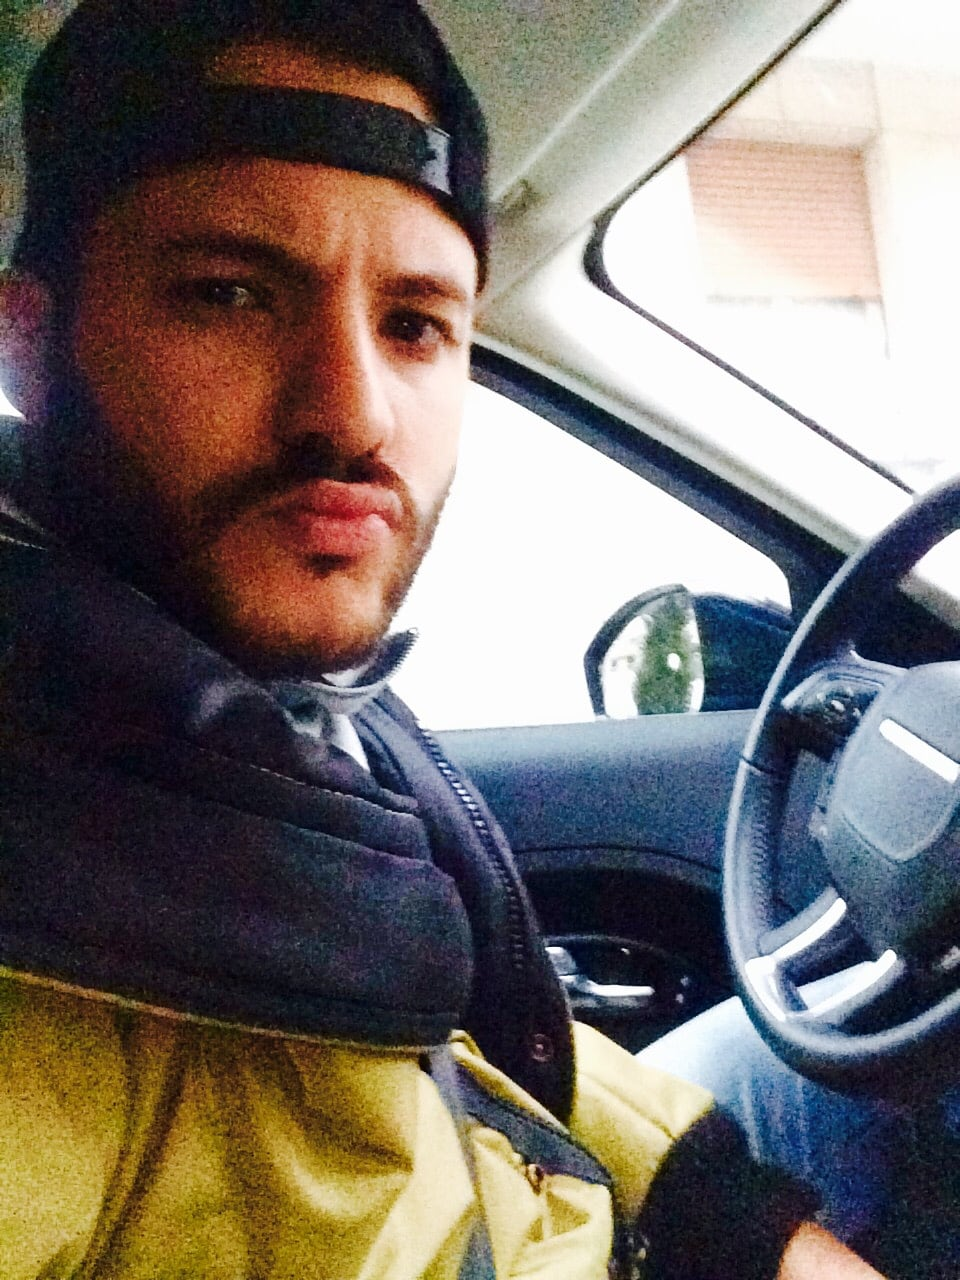 Mimmo From Milan, Italy